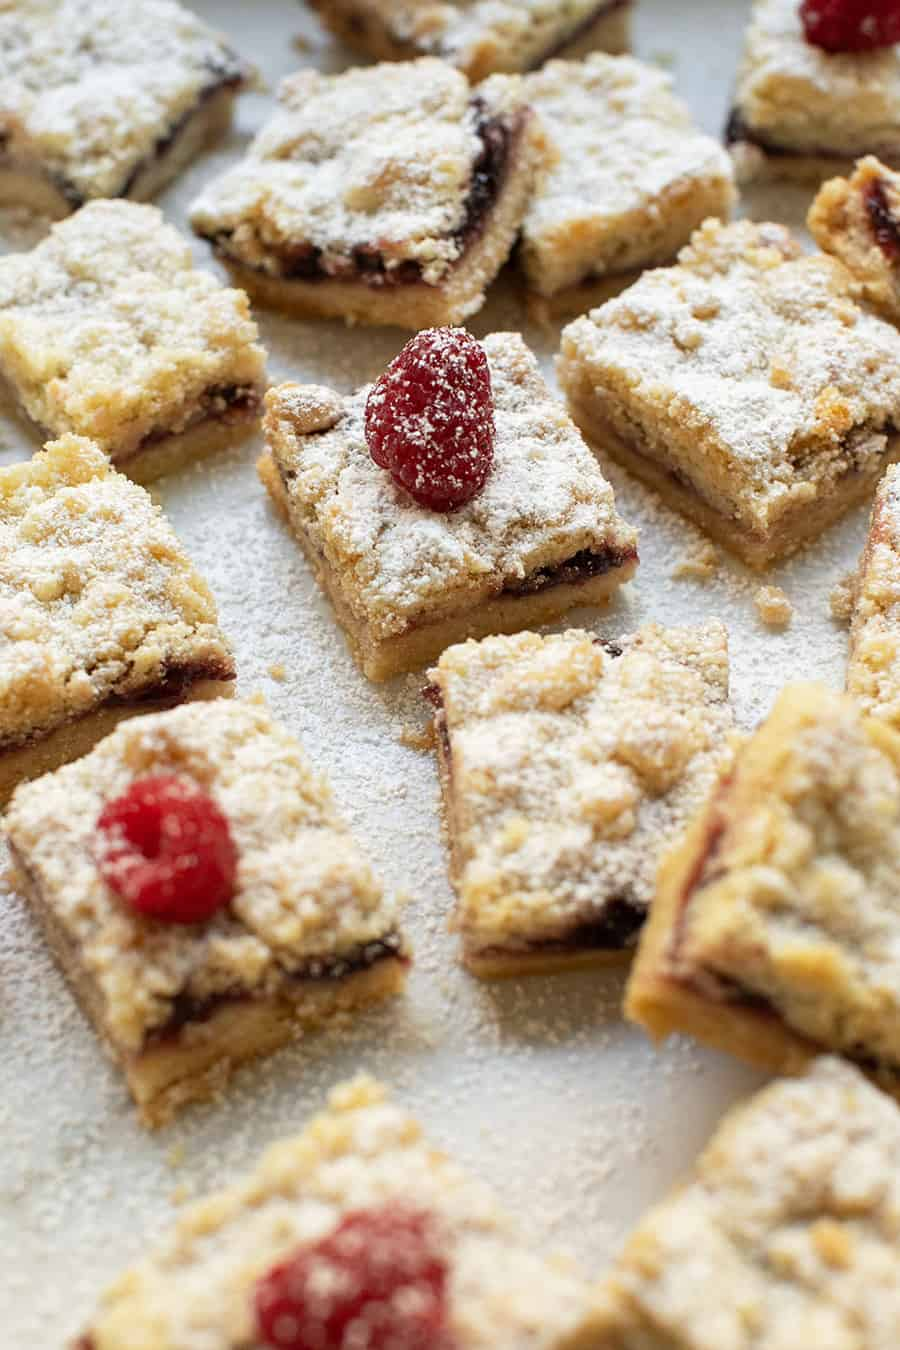 Shortbread bars filled with raspberry preserves, dusted with powdered sugar.